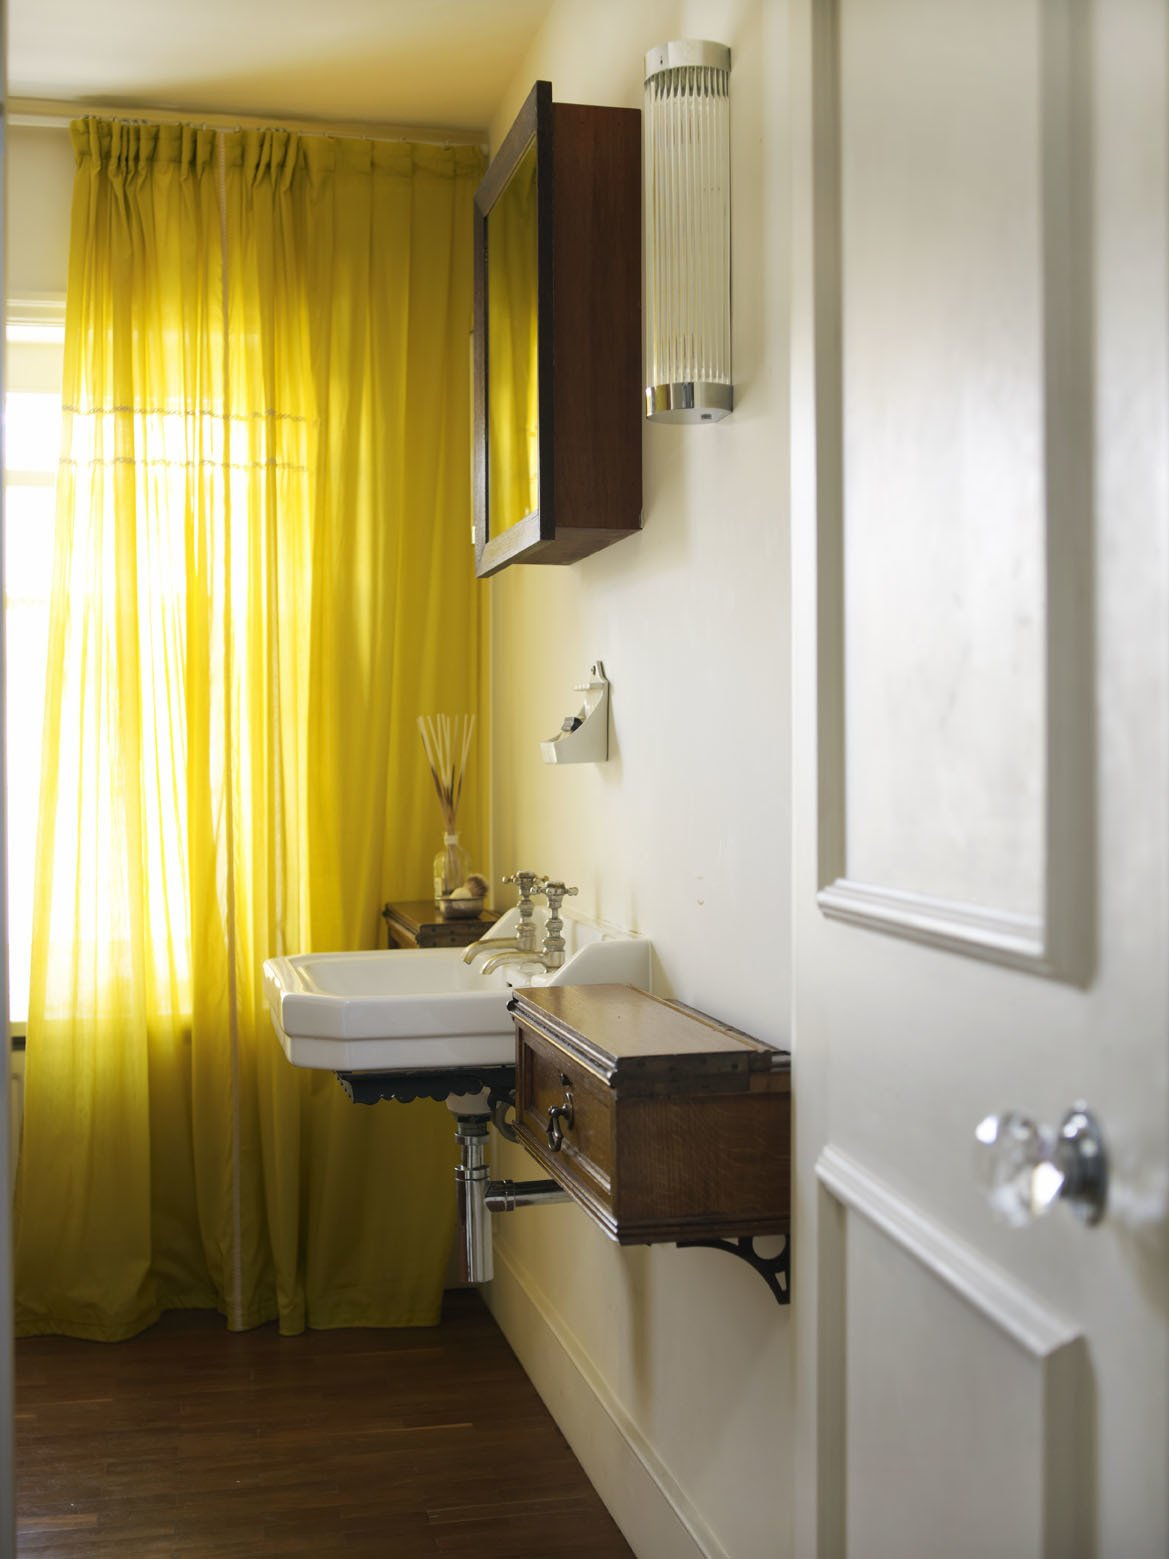 The cupboards of this bathroom are faced in panels of heavily aged leather, originally used on shelves in The British Library.